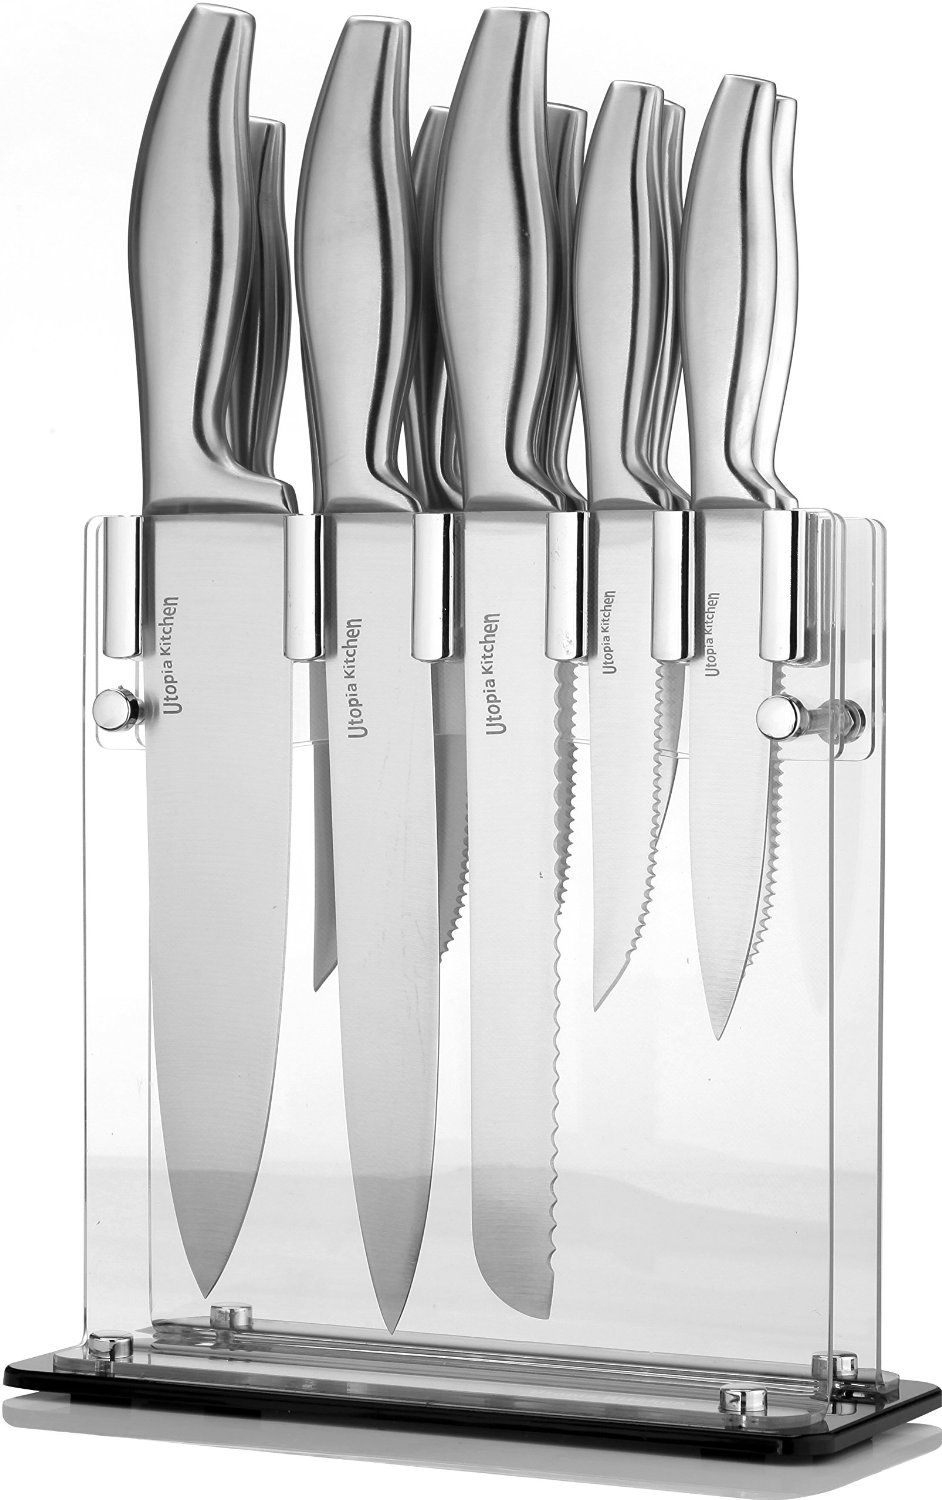 amazon com premium class stainless steel kitchen 12 knife set chefs knife special price premium class stainless steel kitchen 12 knife set with acrylic stand 8 chef knife 8 bread knife 8 carving knife 5 utility knife